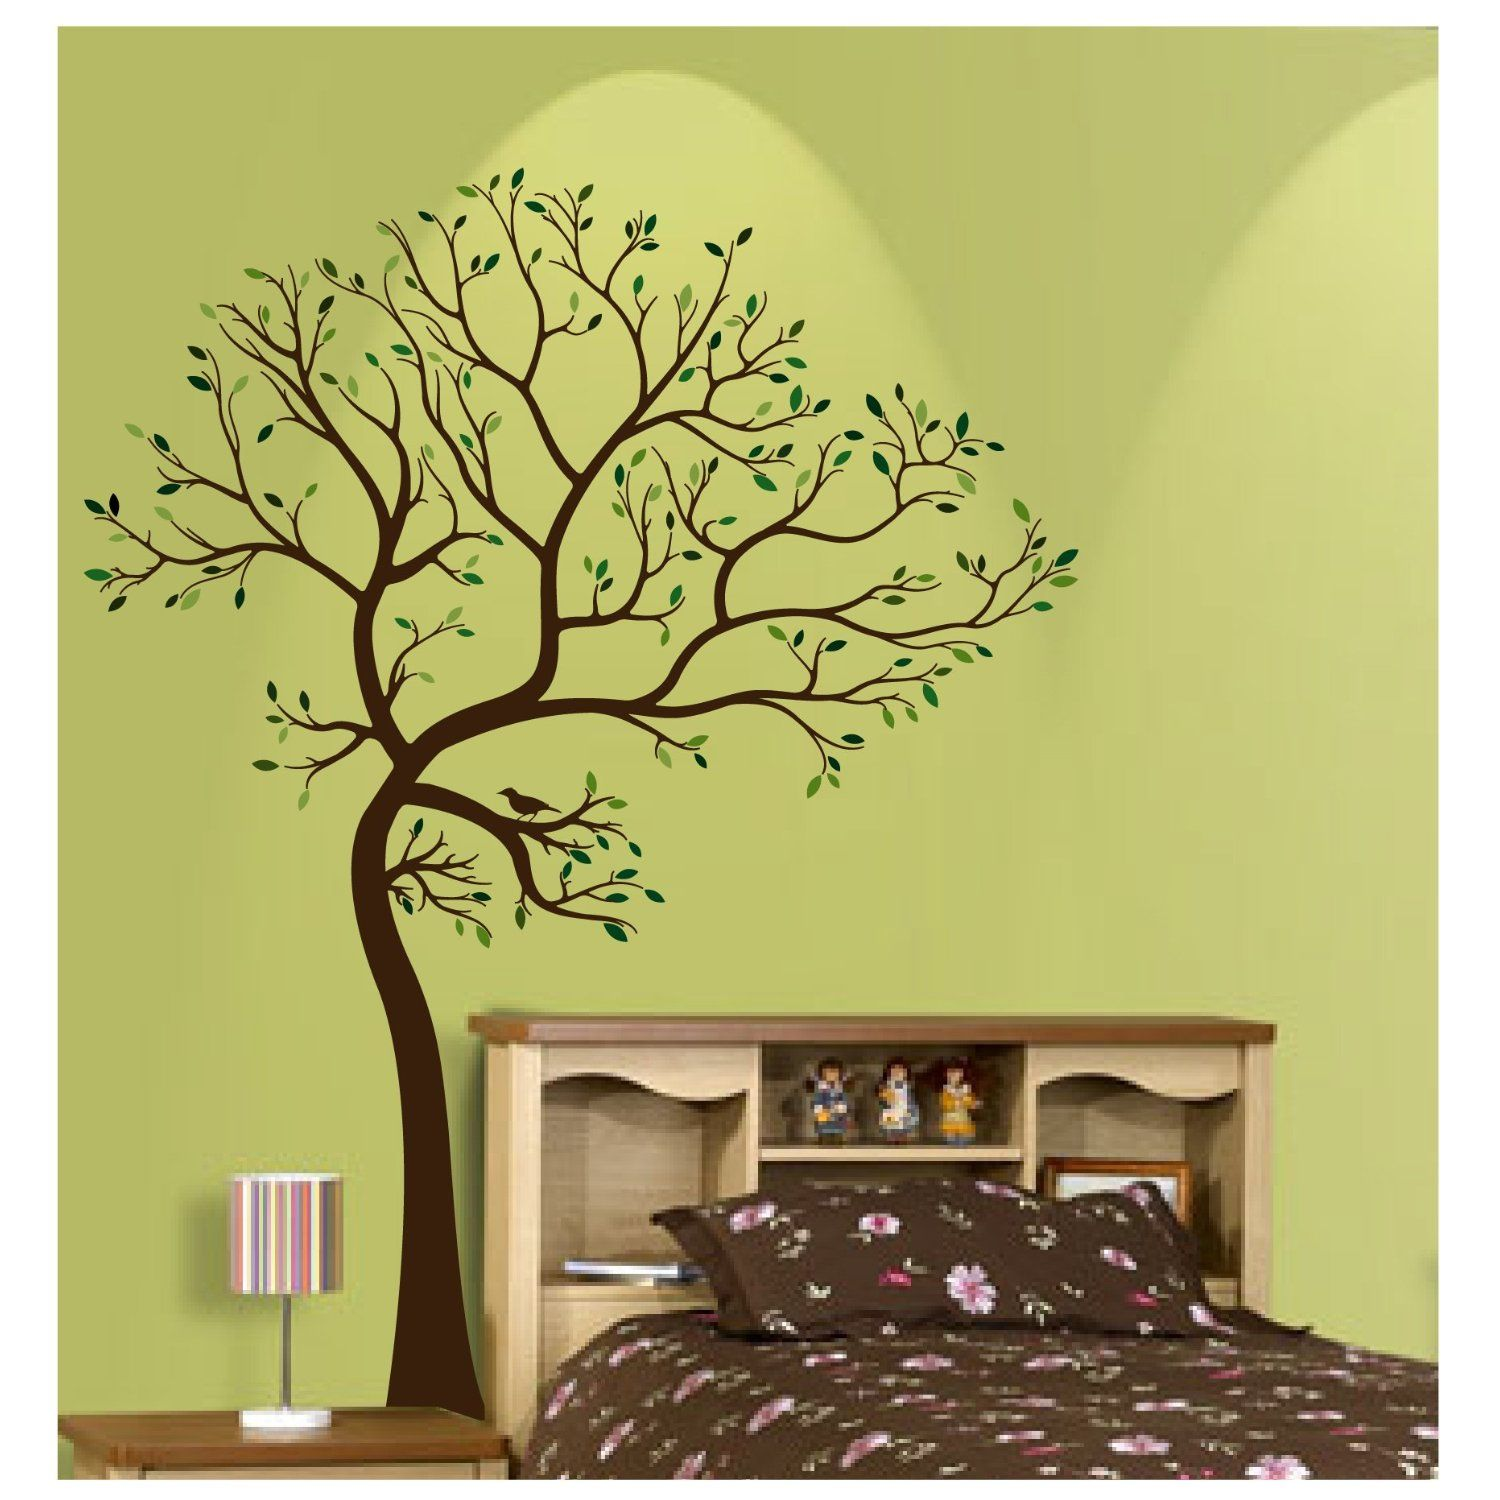 Amazon.com: 6ft Tree Brown & Green with Bird Wall Decal Deco Art ...